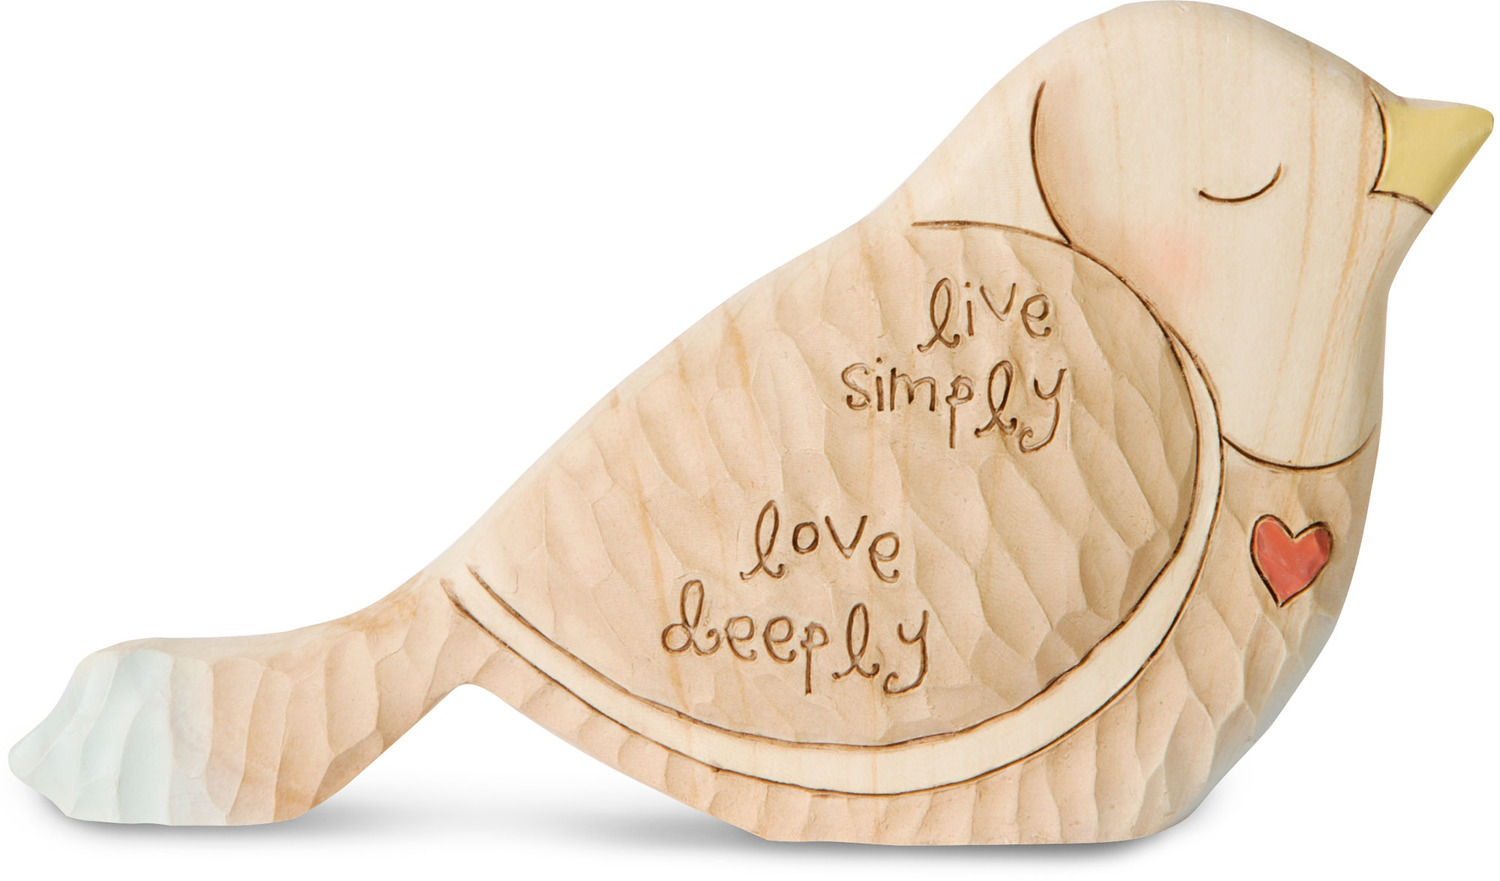 "Live Simply  by Heavenly Woods - Live Simply  - 3"" Painted Bird Figurine/Carving"